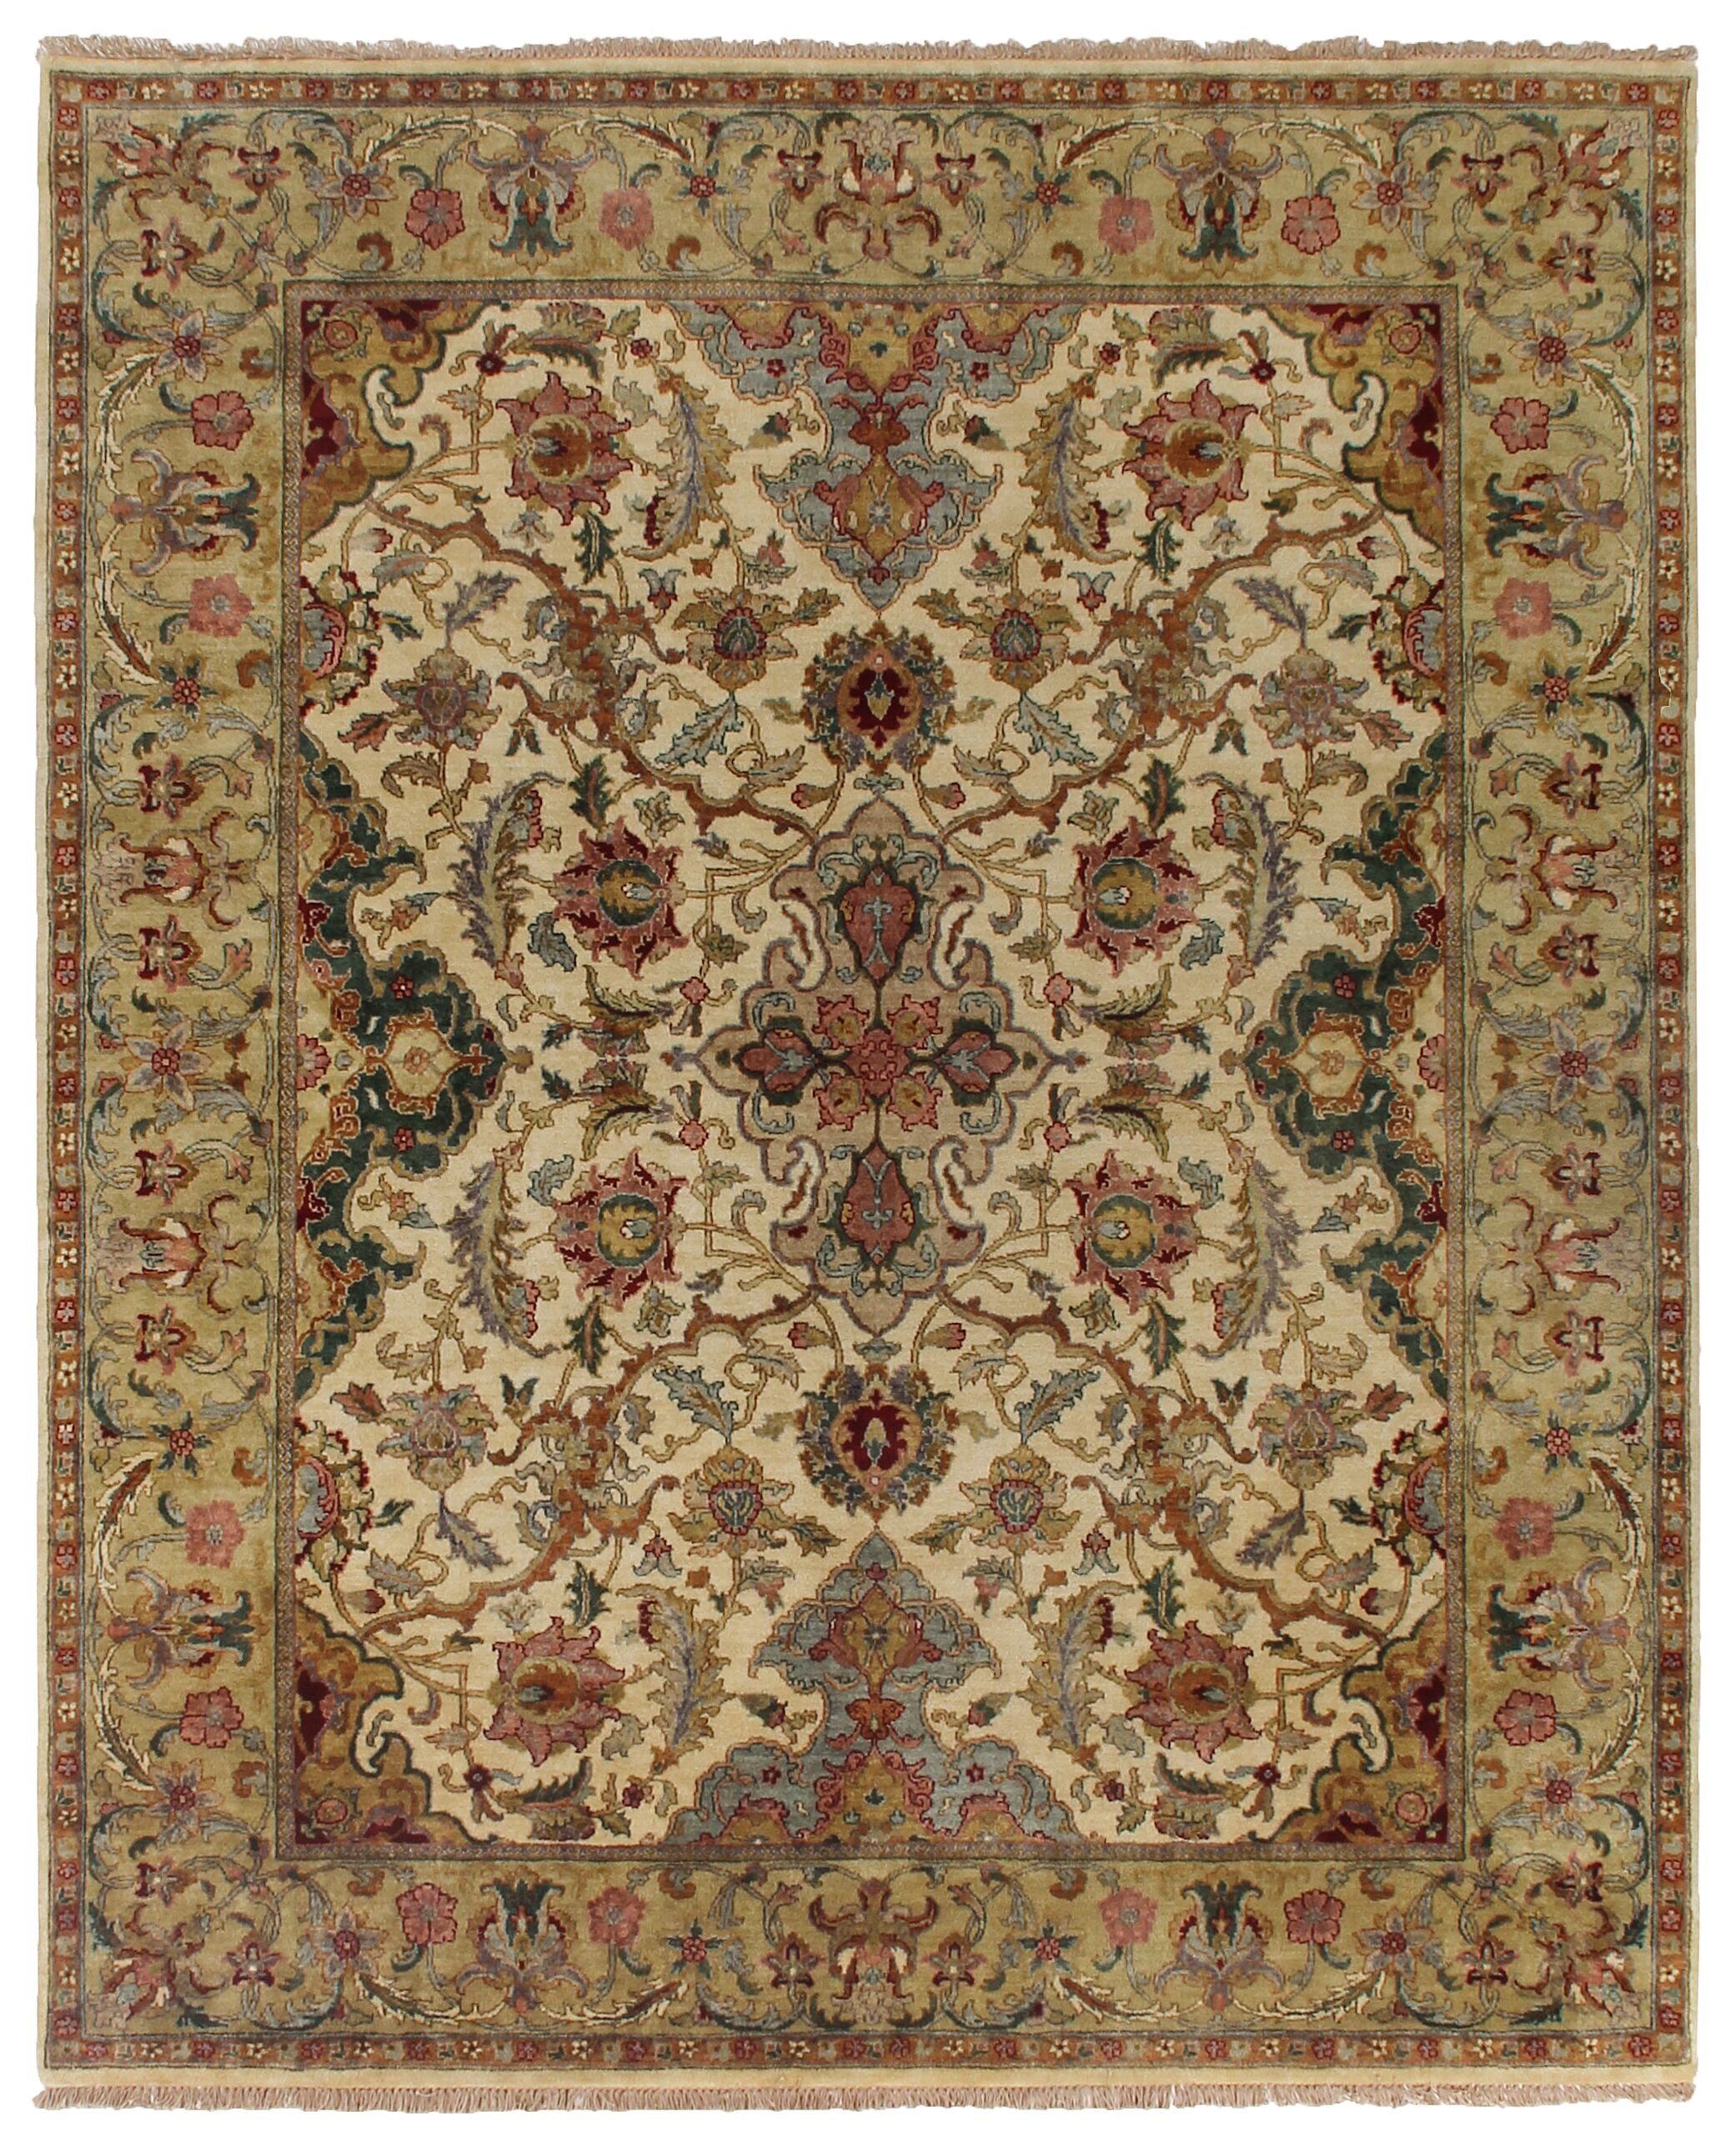 Polonaise Hand Knotted Wool Cream/Brown Area Rug Rug Size: Rectangle 14' x 18'